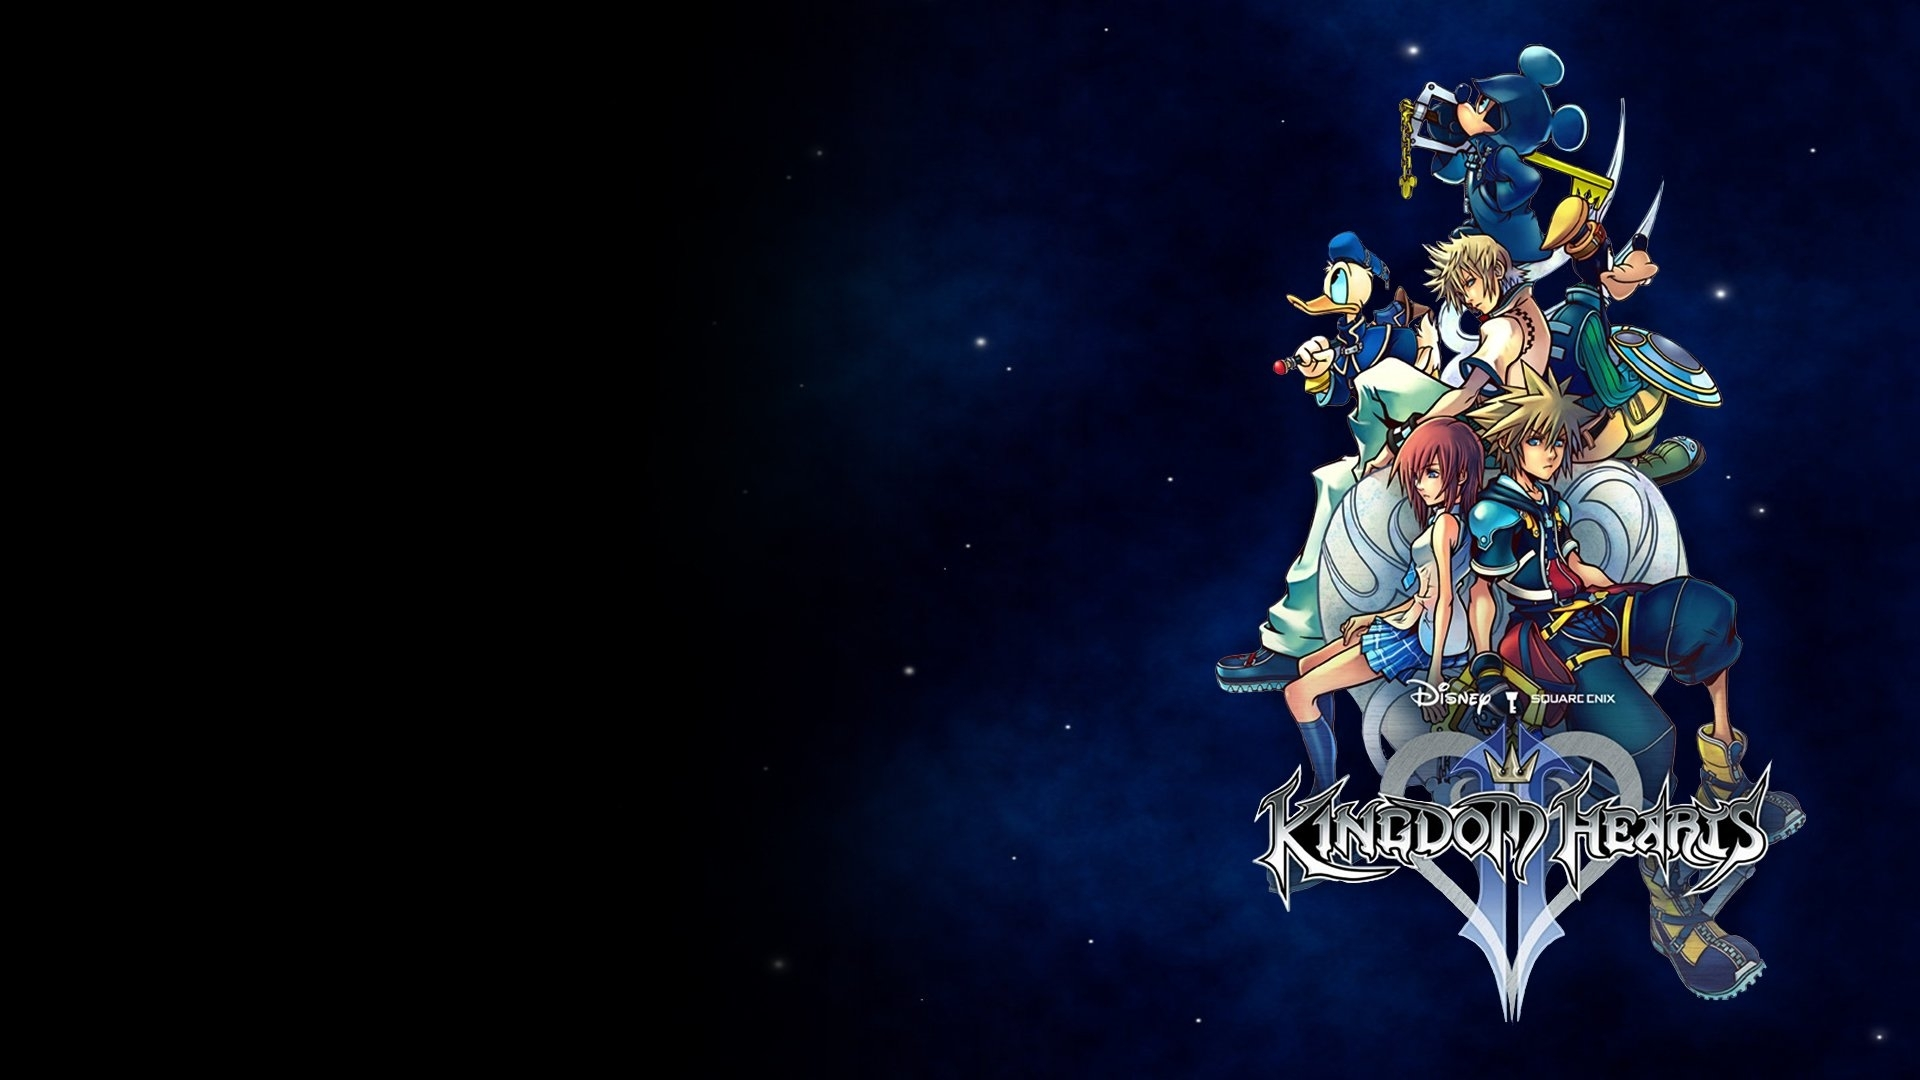 10 New Kingdom Hearts 2 Hd Wallpaper FULL HD 1080p For PC Desktop